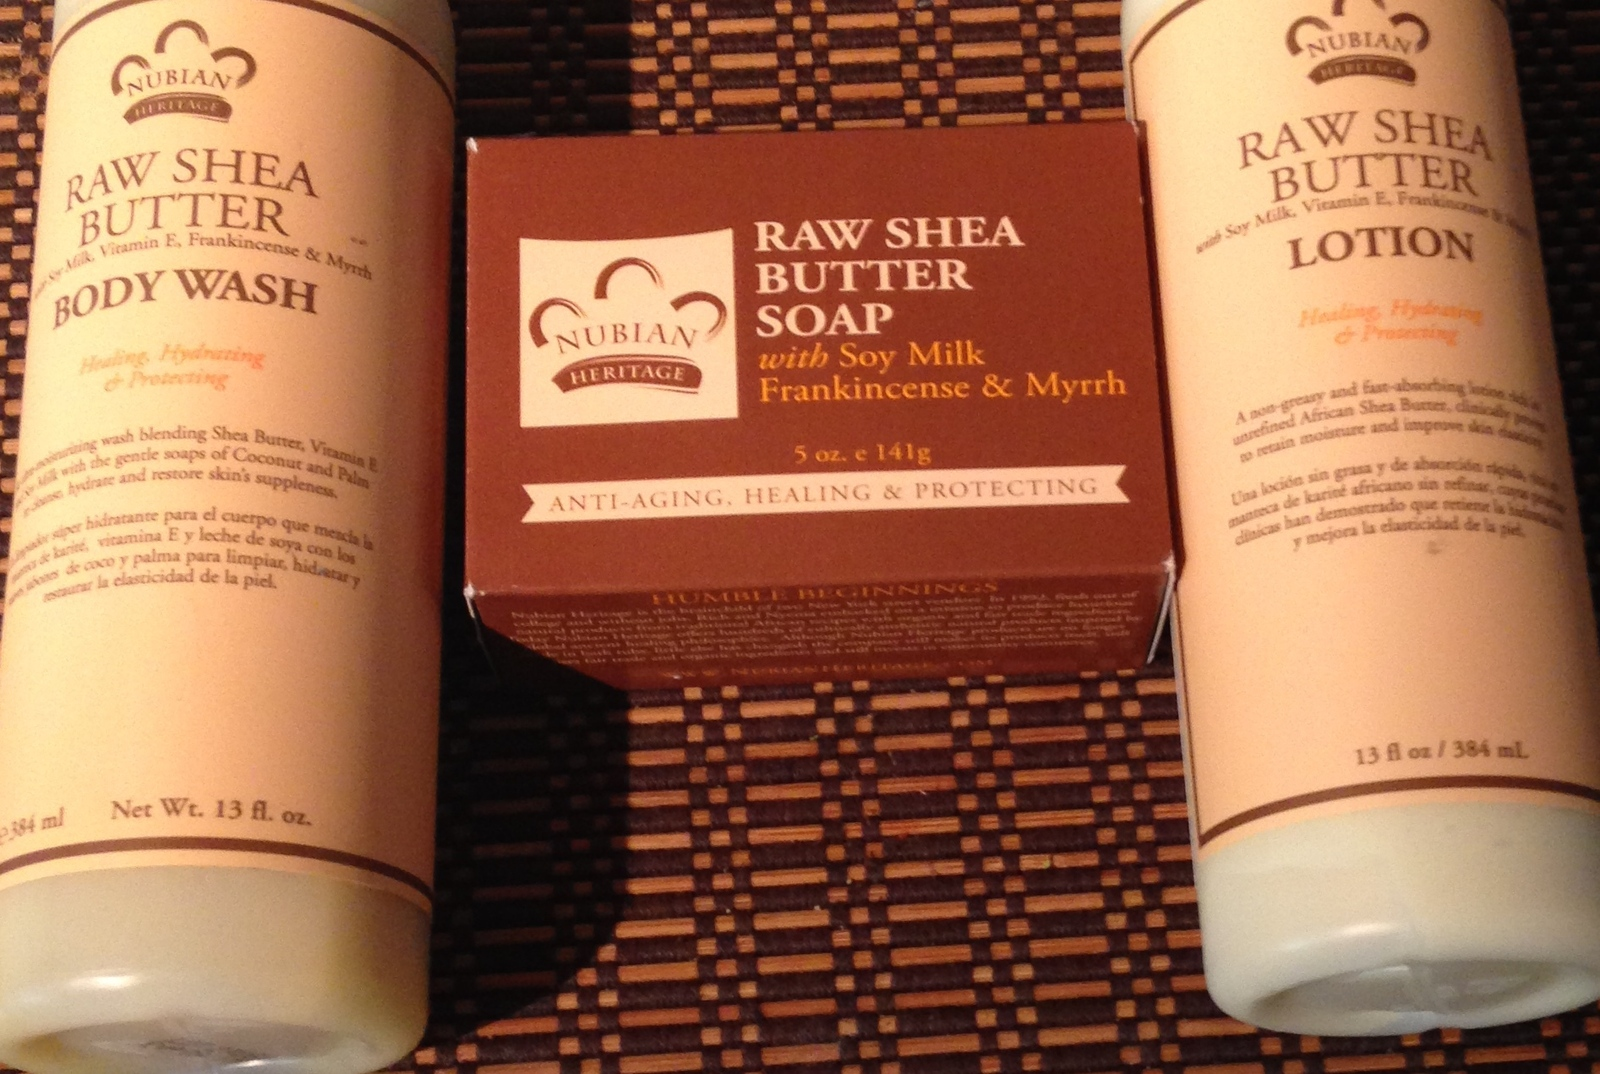 Nubian Heritage Raw Shea Butter with Soy Frankincense and Myrrh Set  - $25.00